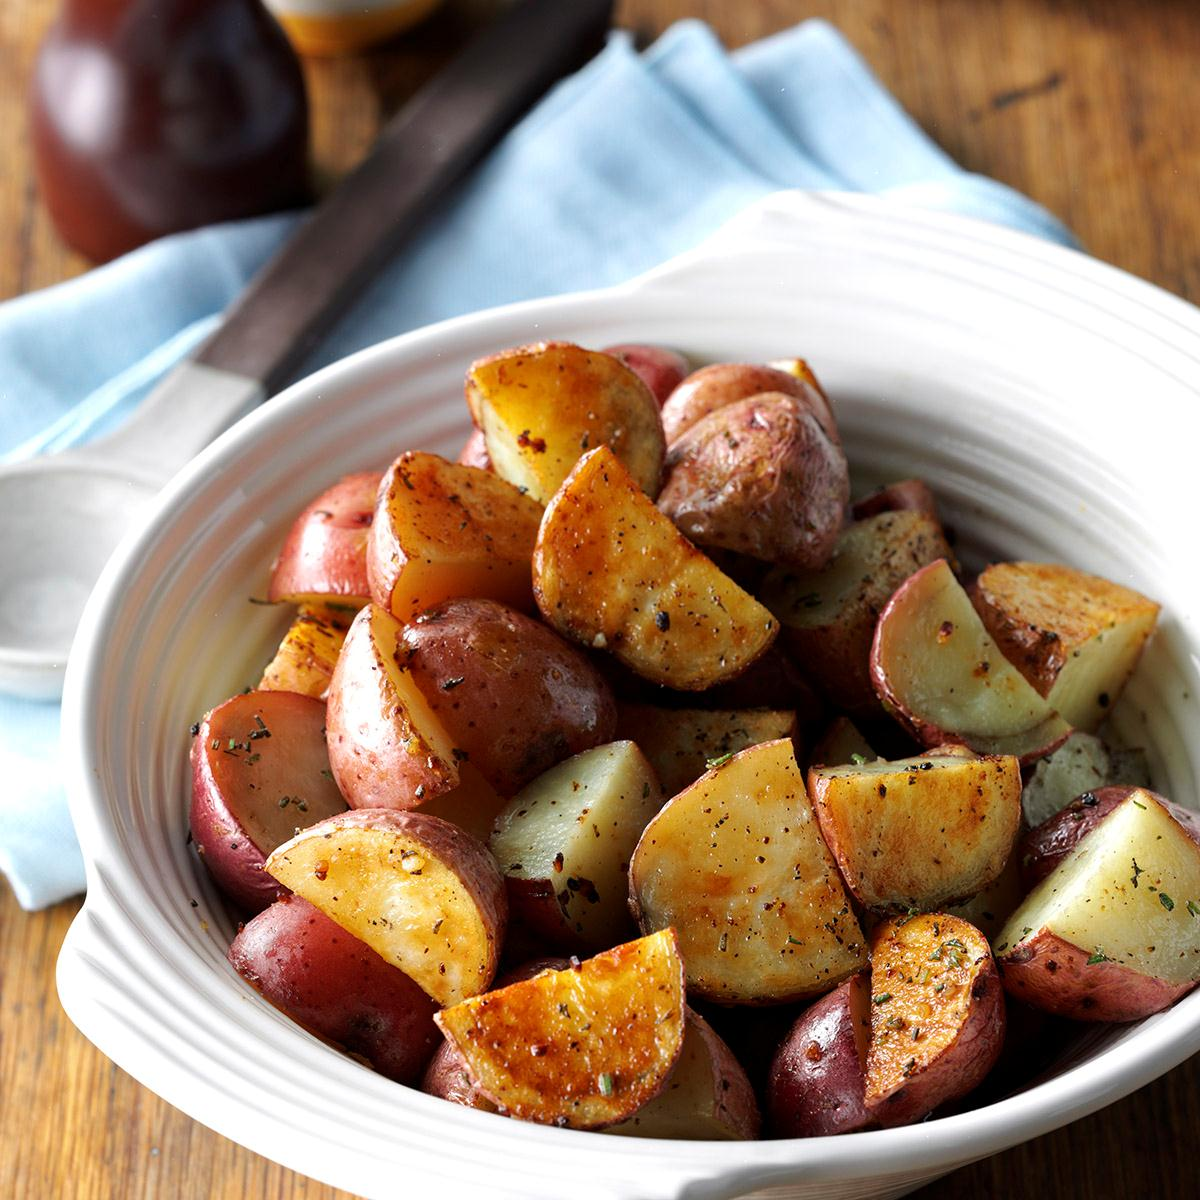 Family Red Potato - Serves 4